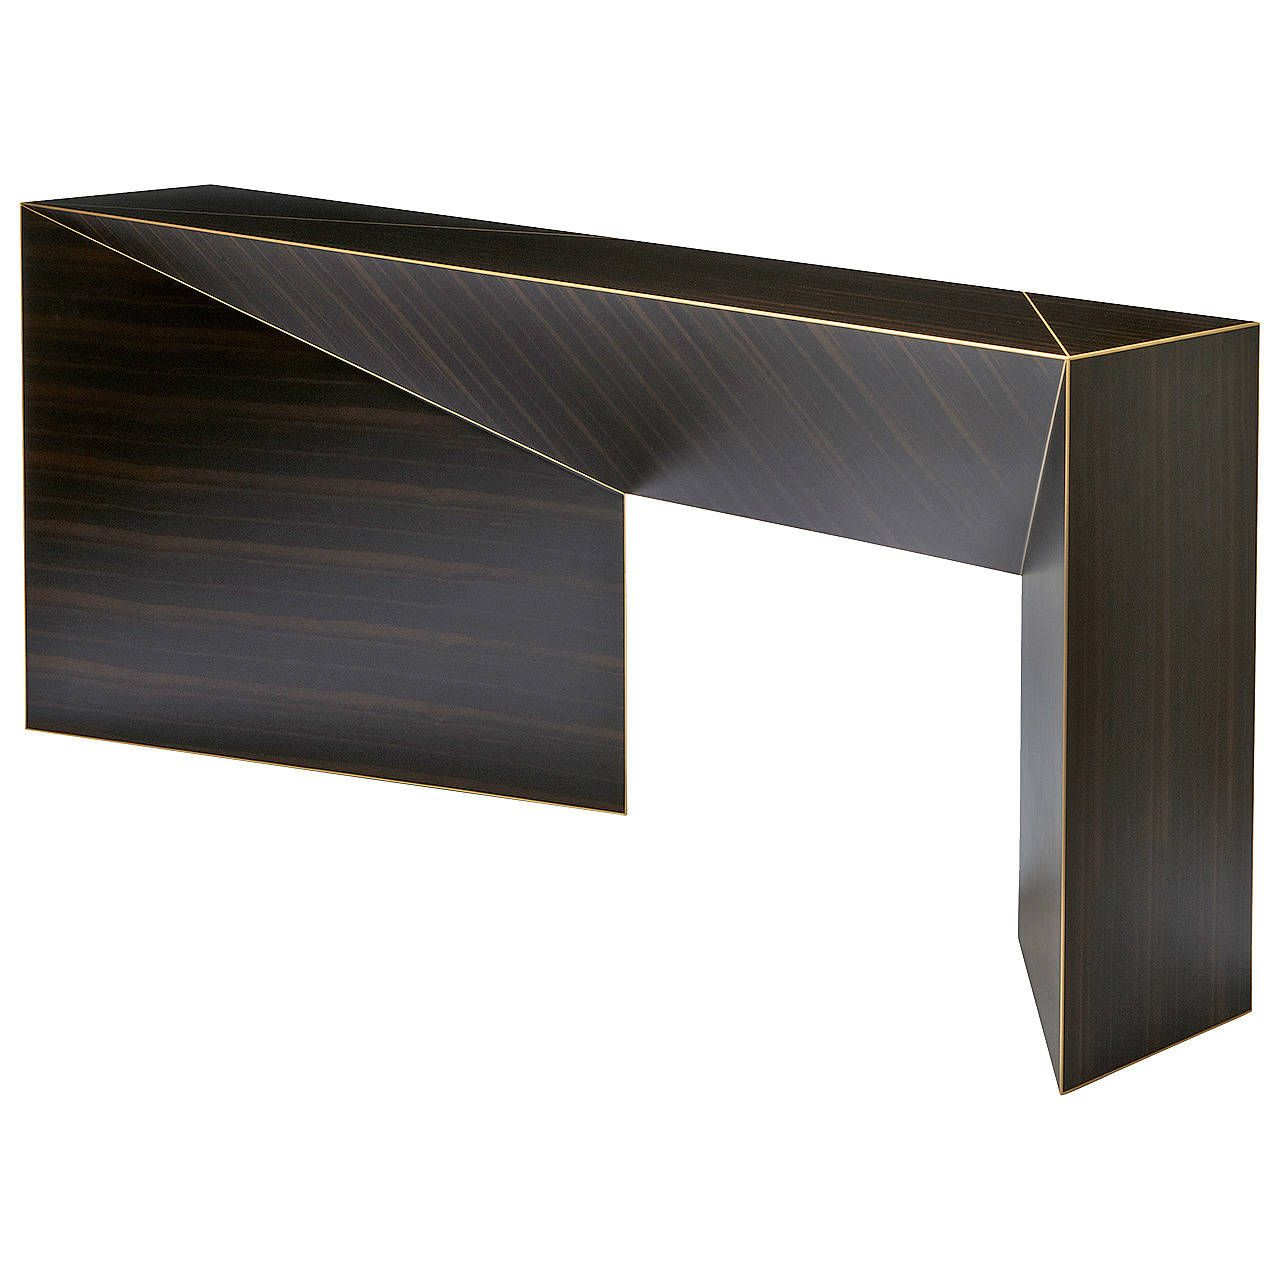 Meuble Langlais Hervé Langlais Vertigo Console Table From The Shifting